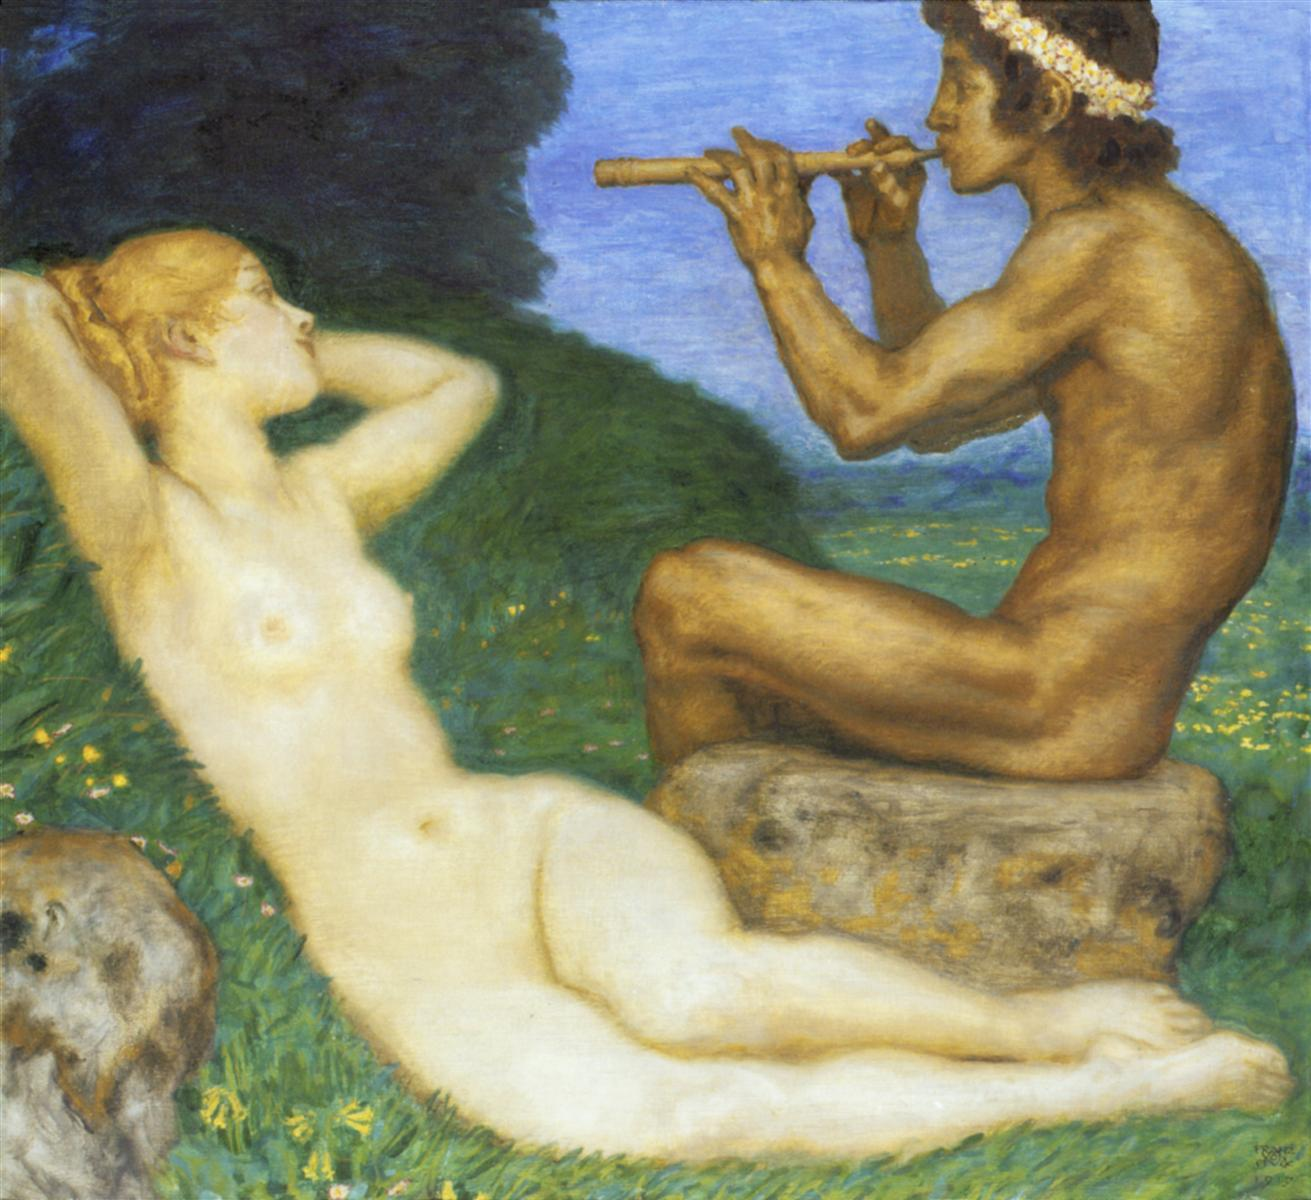 http://uploads3.wikipaintings.org/images/franz-stuck/springtime-of-love-1917.jpg!HD.jpg